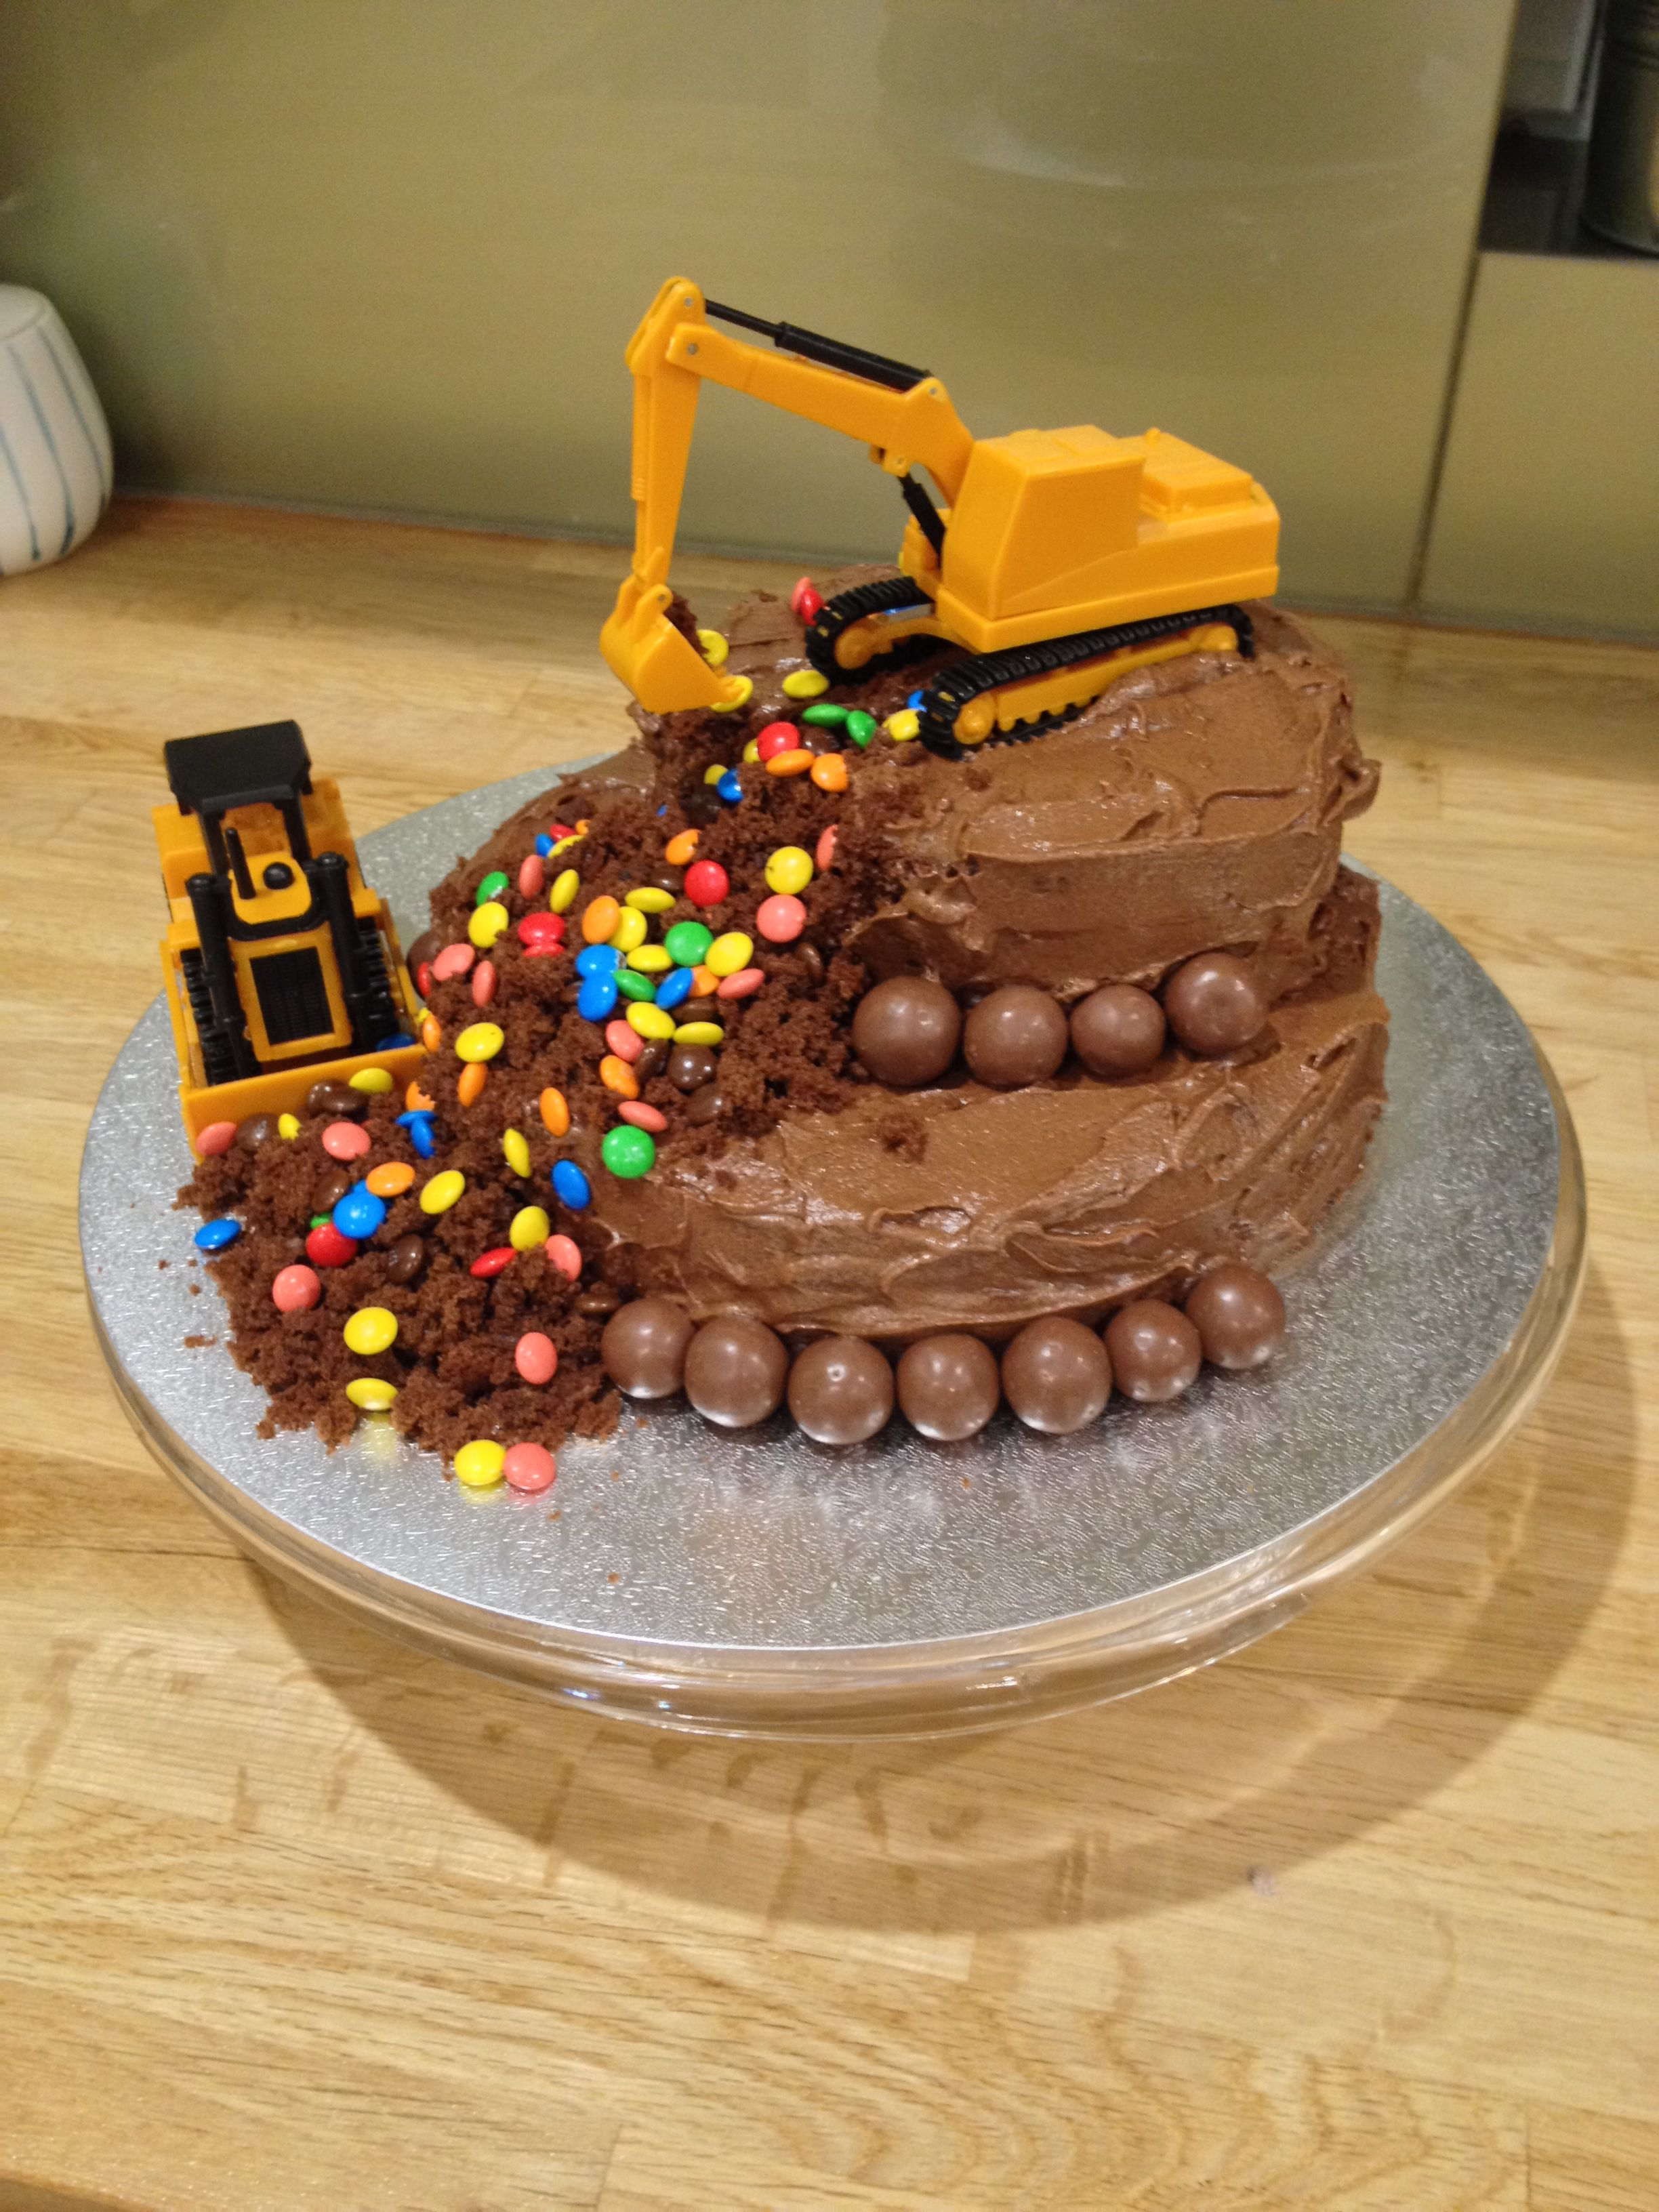 construction theme cake for my 3 year old boy who loves m&ms